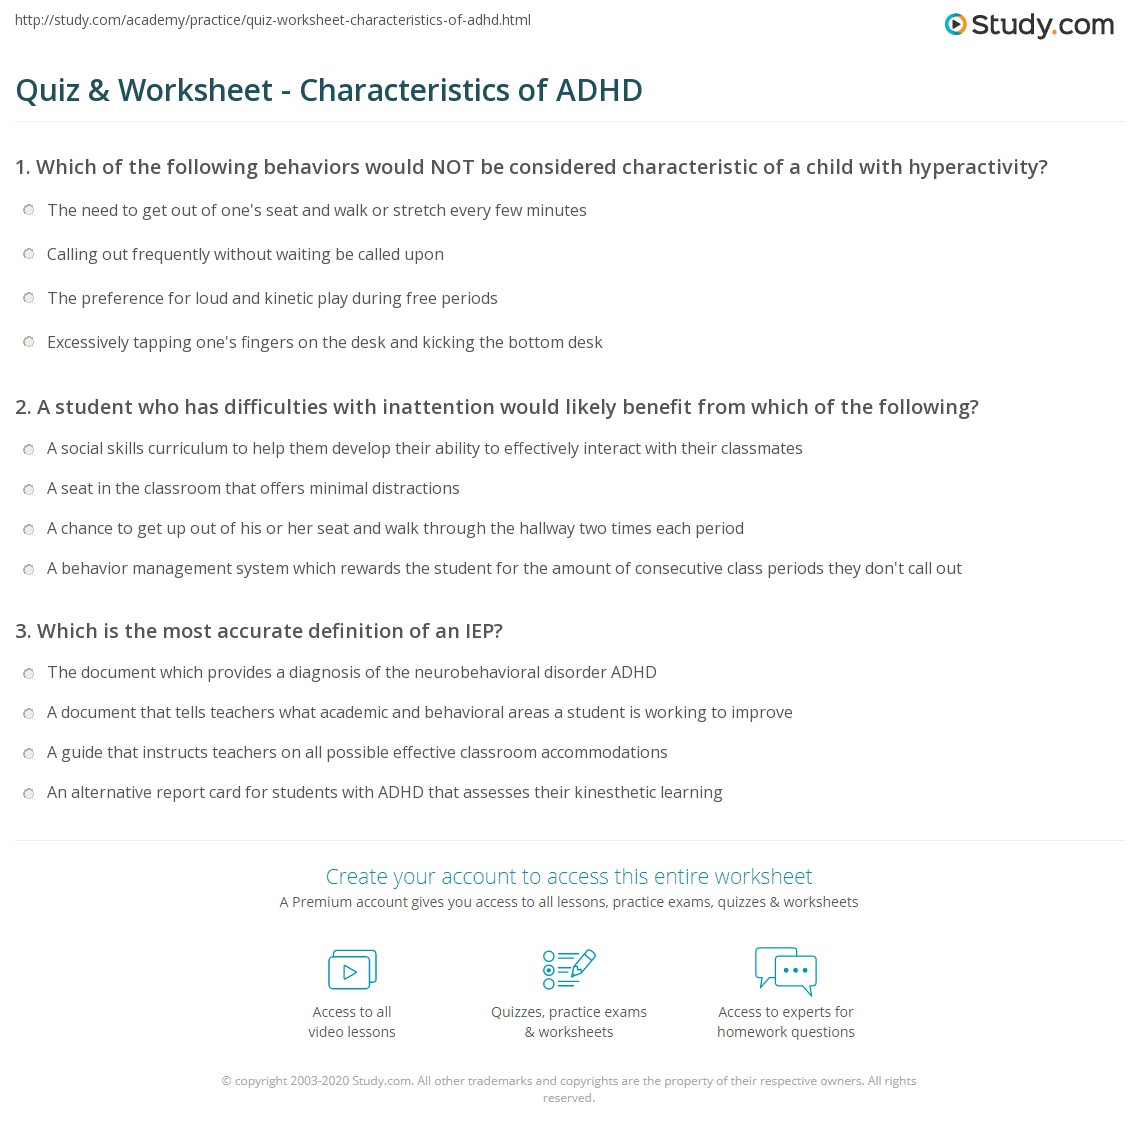 quiz & worksheet - characteristics of adhd | study